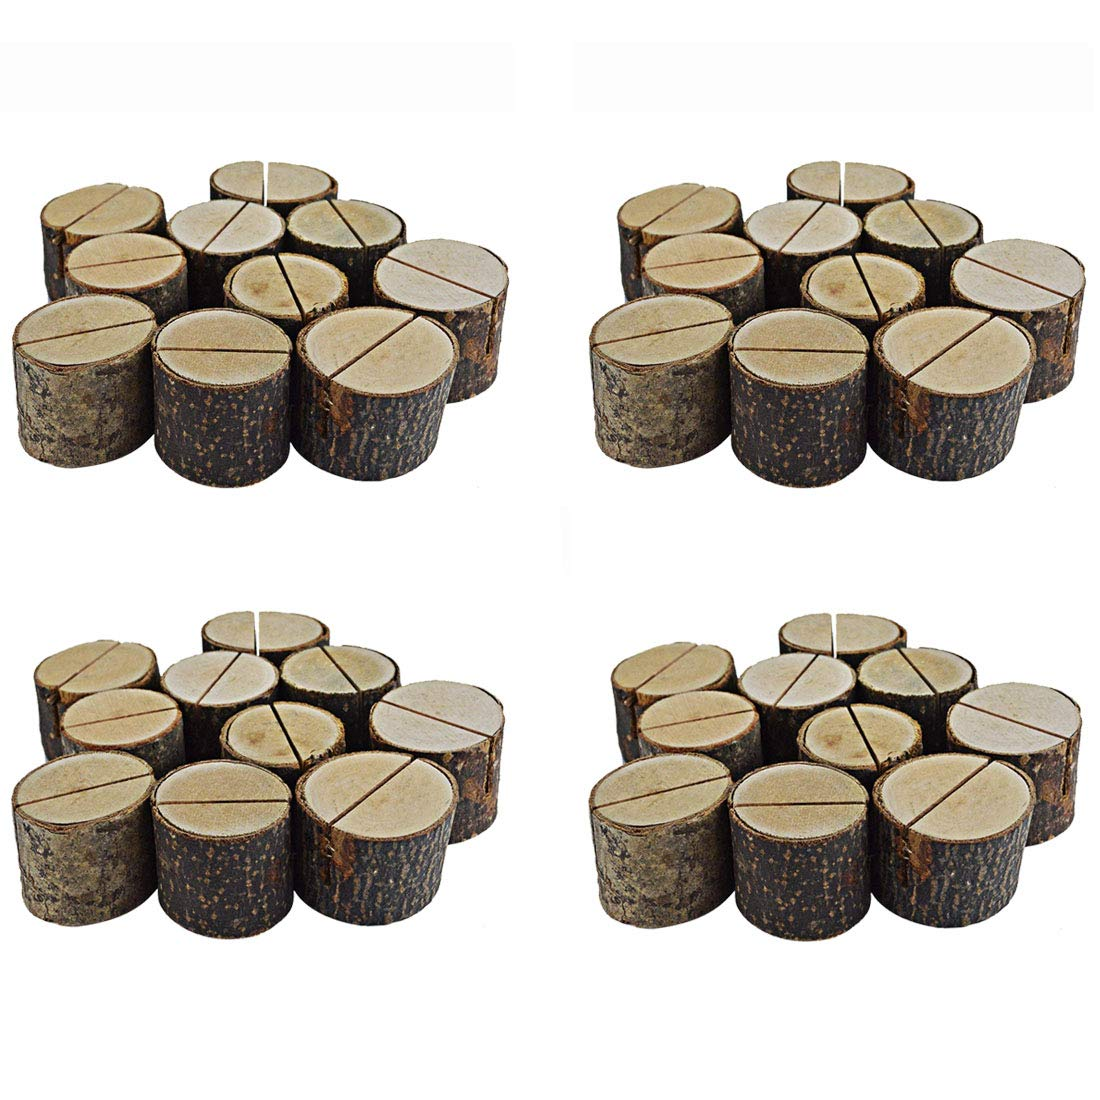 Bantoye 40 Pcs Rustic Wood Base Clip Holder DIY Table Name Number Card Holder Picture Memo Note Photo Message Clip for Party Wedding Table Name